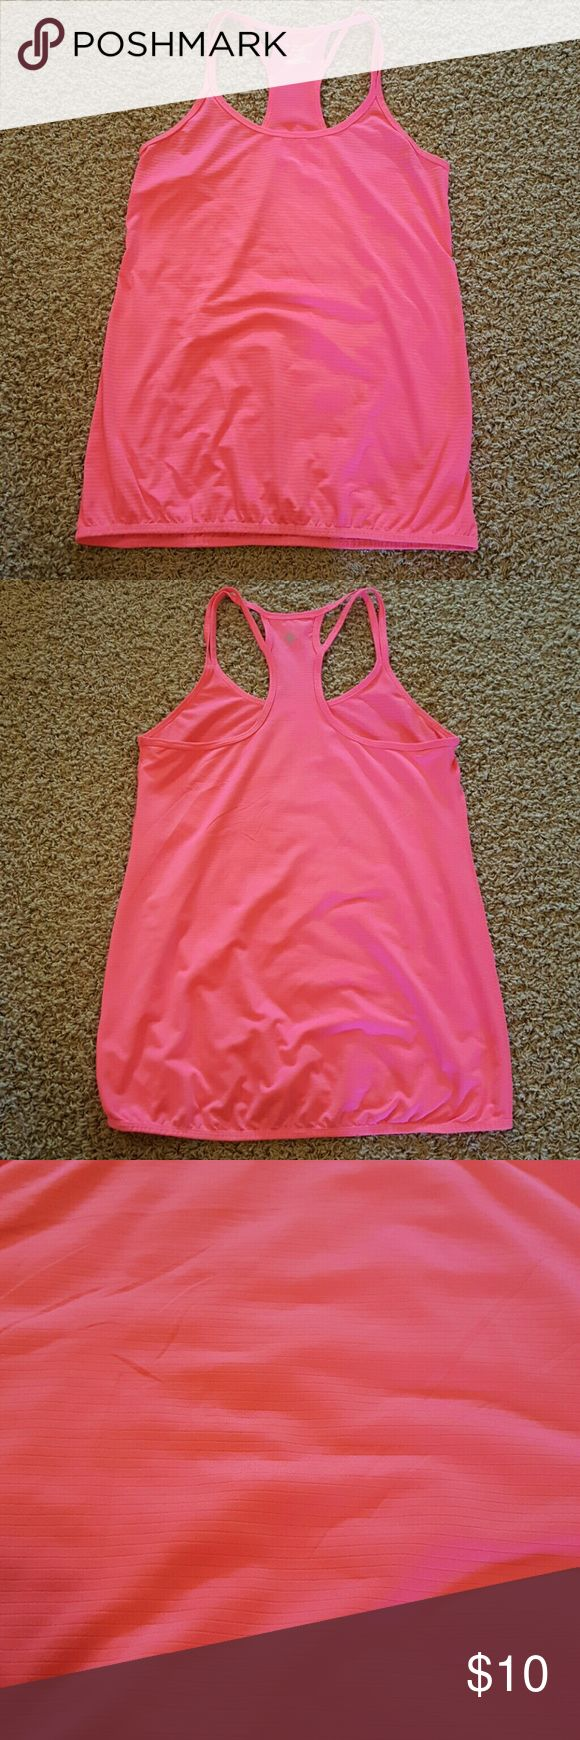 Bright pink workout tank Bright pink workout tank. Is loose, but has a small band at the bottom. (Not Zella, just used for exposure.) Zella Tops Tank Tops